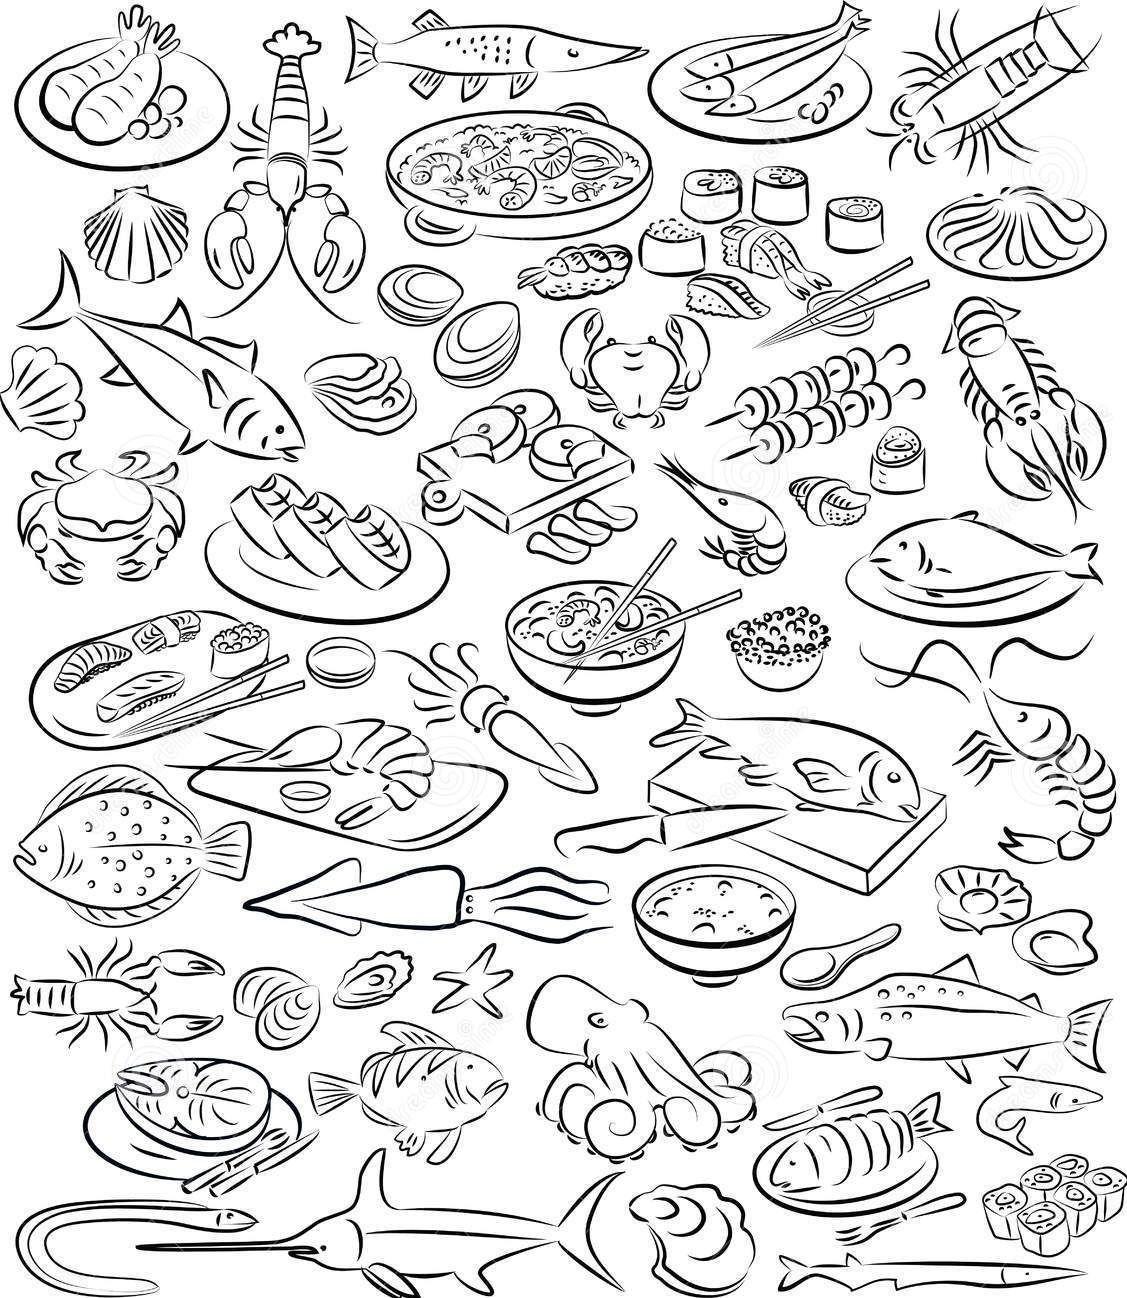 coloring pages food - Coloring Pages Food